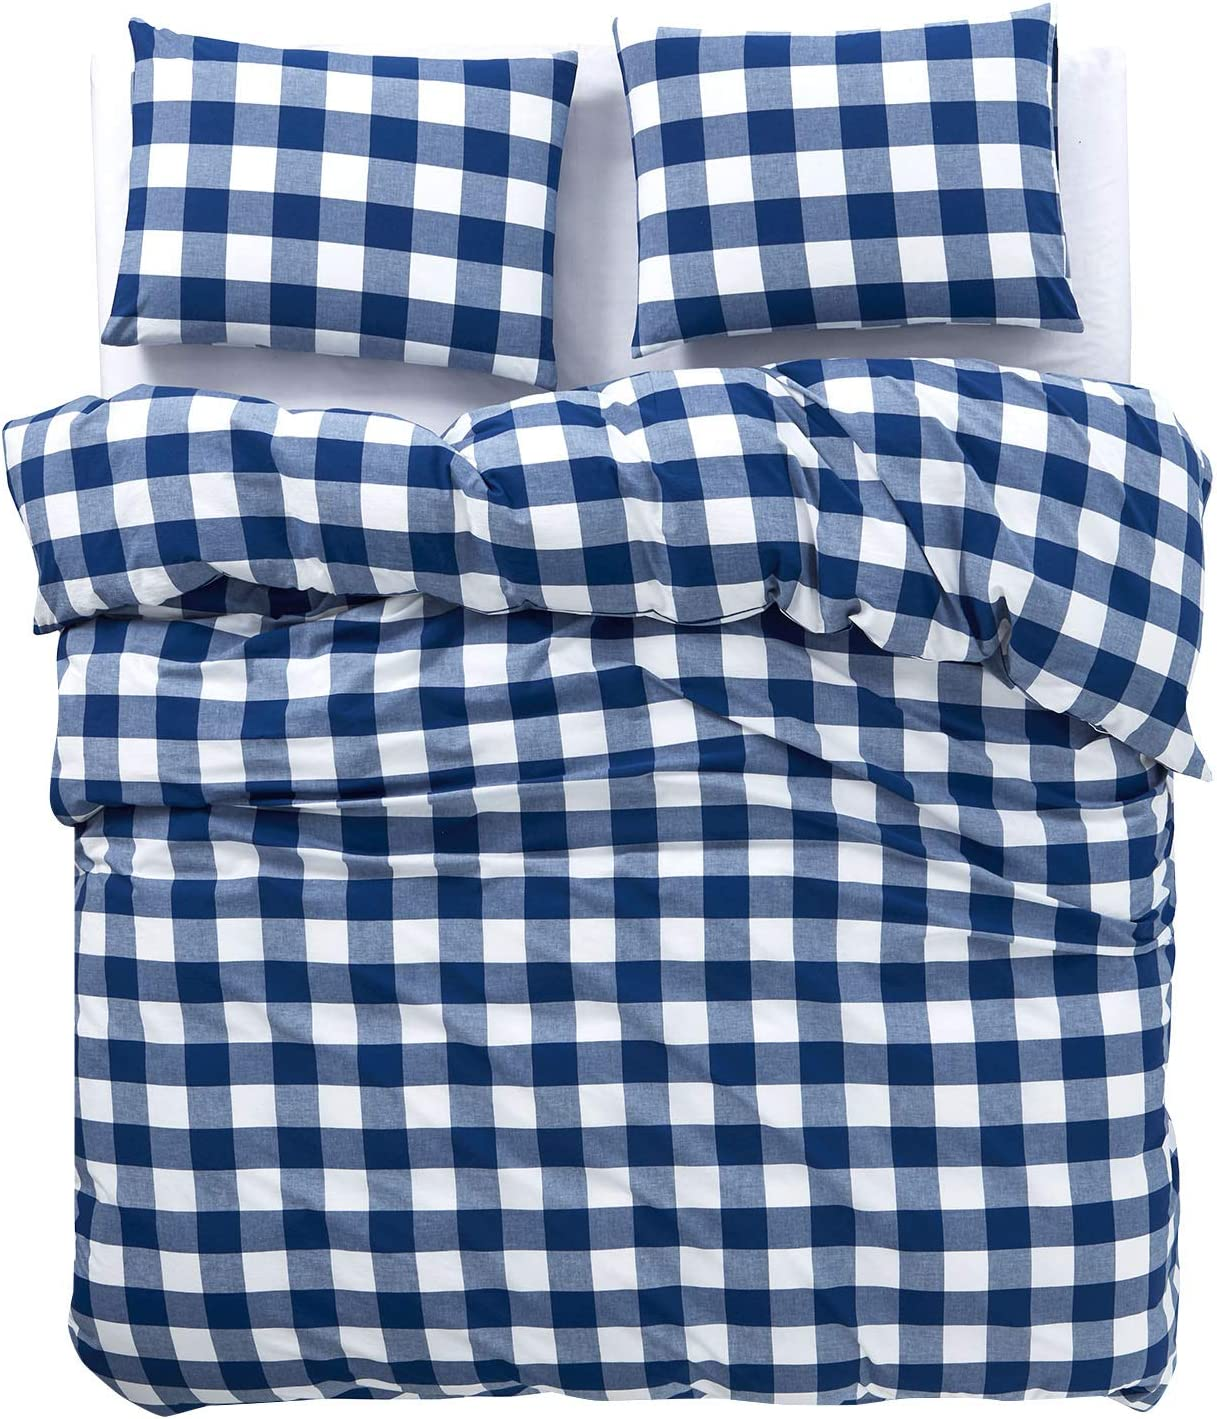 Wake In Cloud Plaid Duvet Cover Set 3pcs, Twin Size Buffalo Check Gingham Geometric Checker Printed in White Black and Gray 100/% Washed Cotton Bedding with Zipper Closure